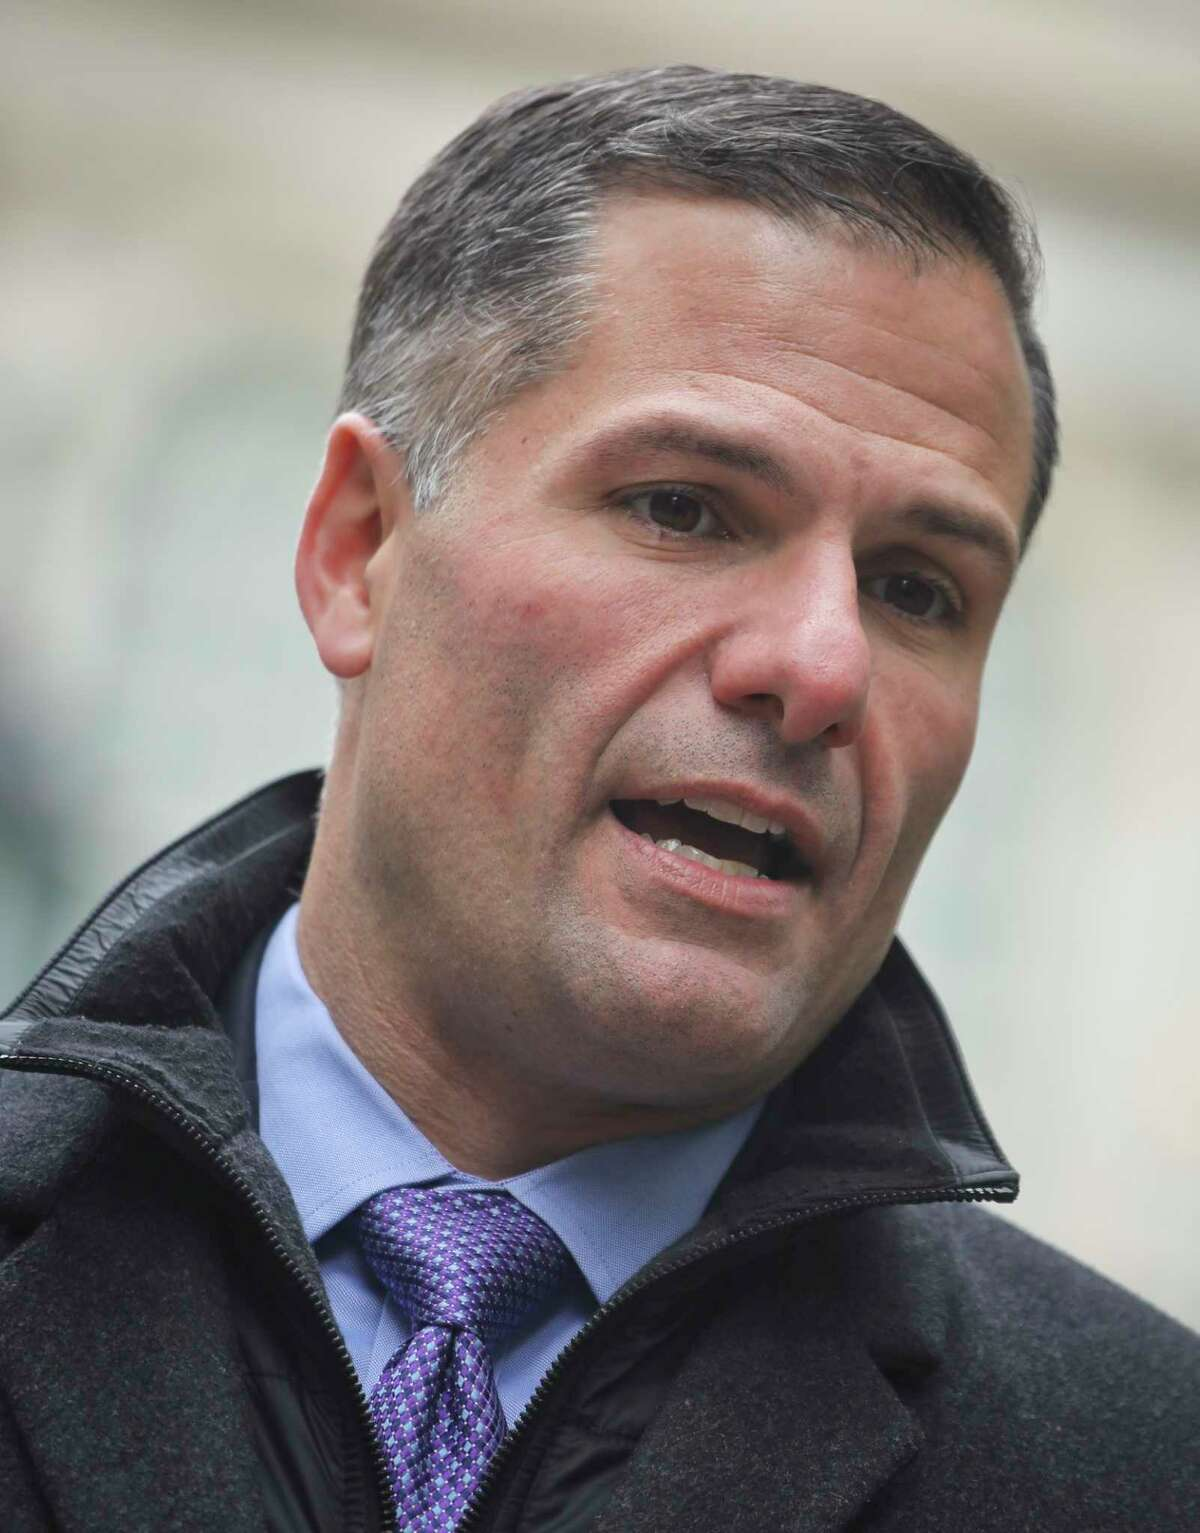 New York Republican gubernatorial candidate Marc Molinaro holds a press conference in City Hall Park, Monday Oct. 22, 2018, in New York. Molinaro will debate Gov. Andrew Cuomo on Tuesday in their only scheduled exchange before next month's election. (AP Photo/Bebeto Matthews)